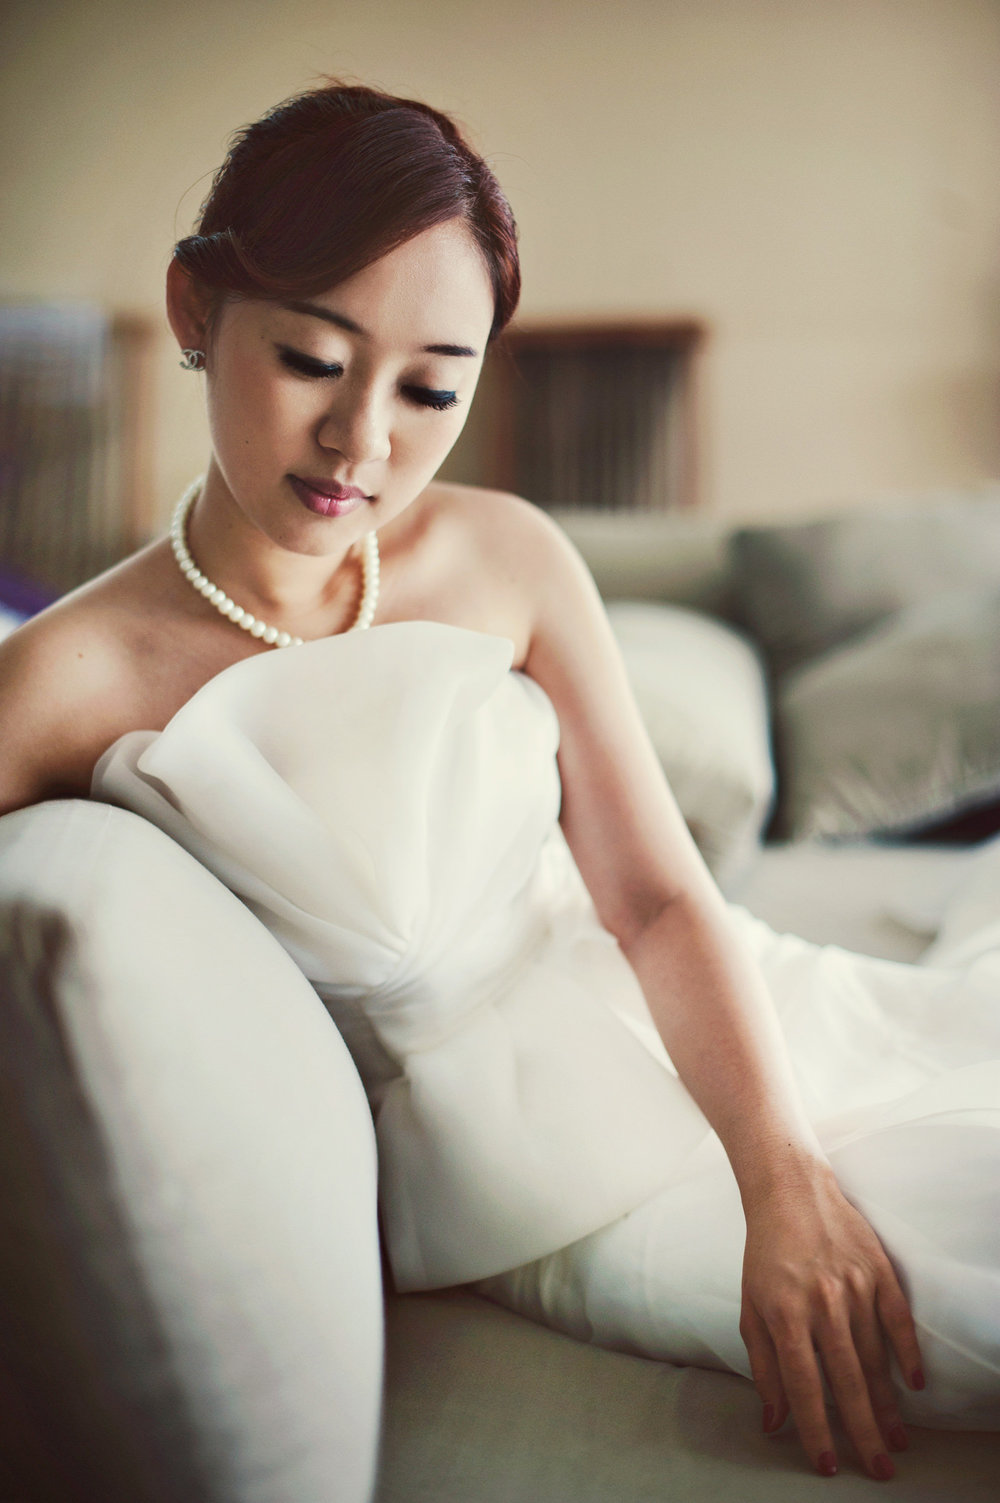 Chris_Hui_婚禮_婚紗照_pre_wedding_photography_best_059_.jpg